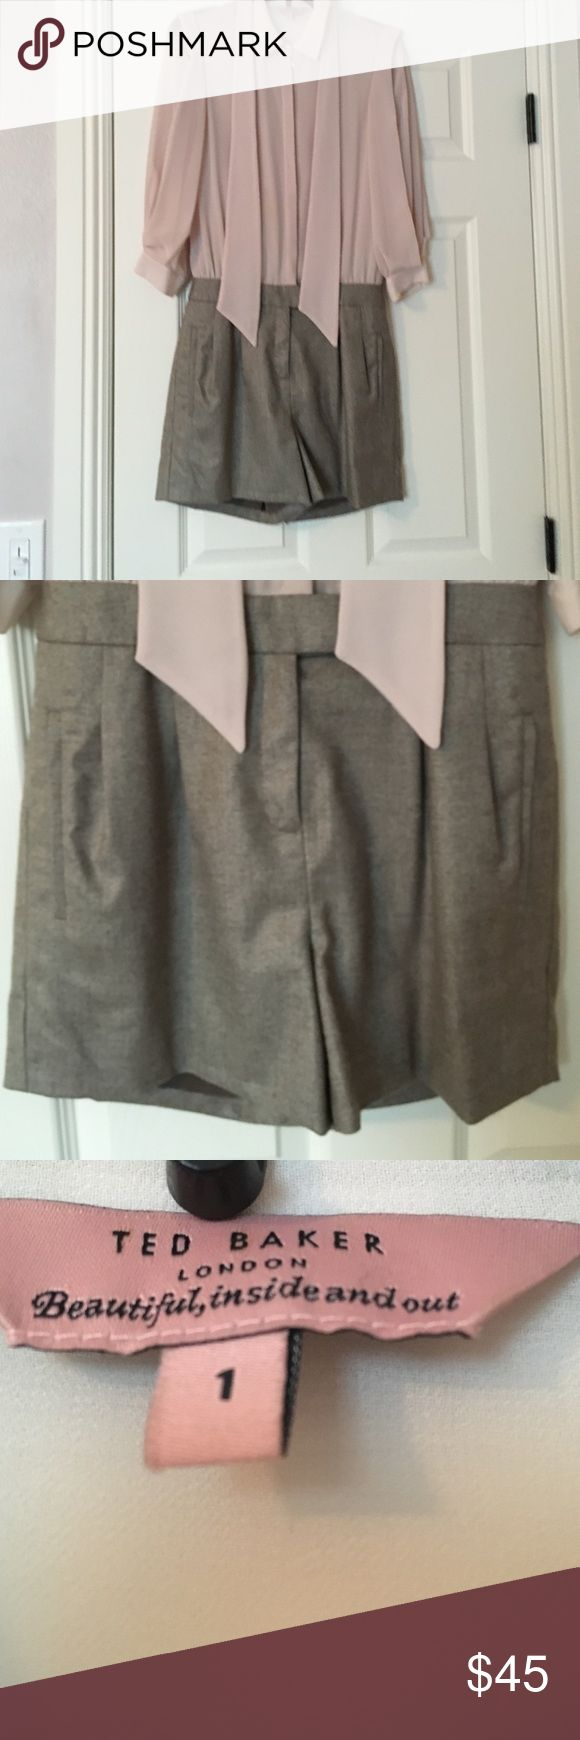 Gorgeous romper by Ted Baker. Worn once. Worn once. Pretty much new. Size 1. Shorts have side pockets and are lined inside. Tie is attached to the back of collar. Ted Baker Dresses Long Sleeve